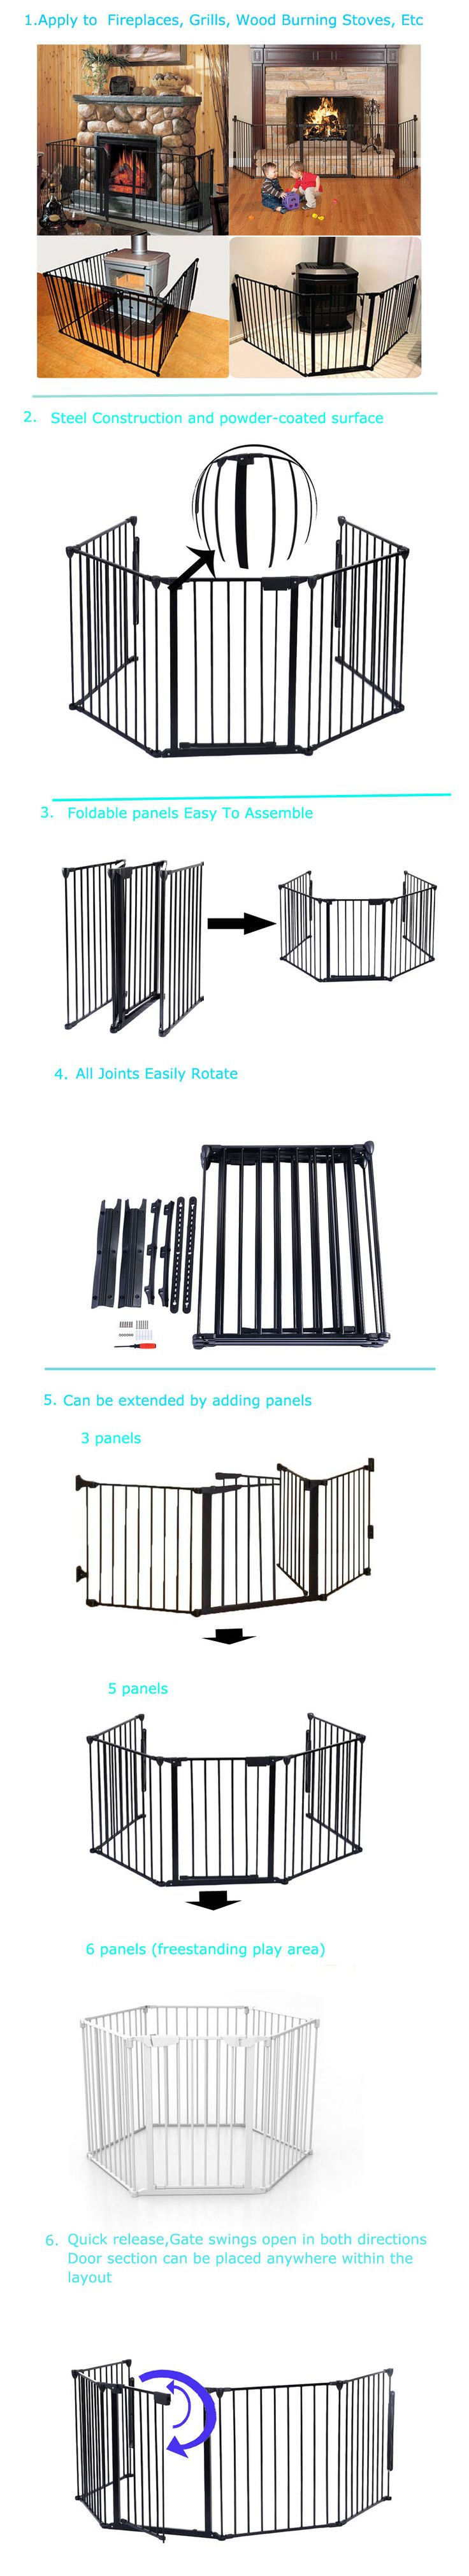 best 25 safety gates for babies ideas on pinterest diy safety